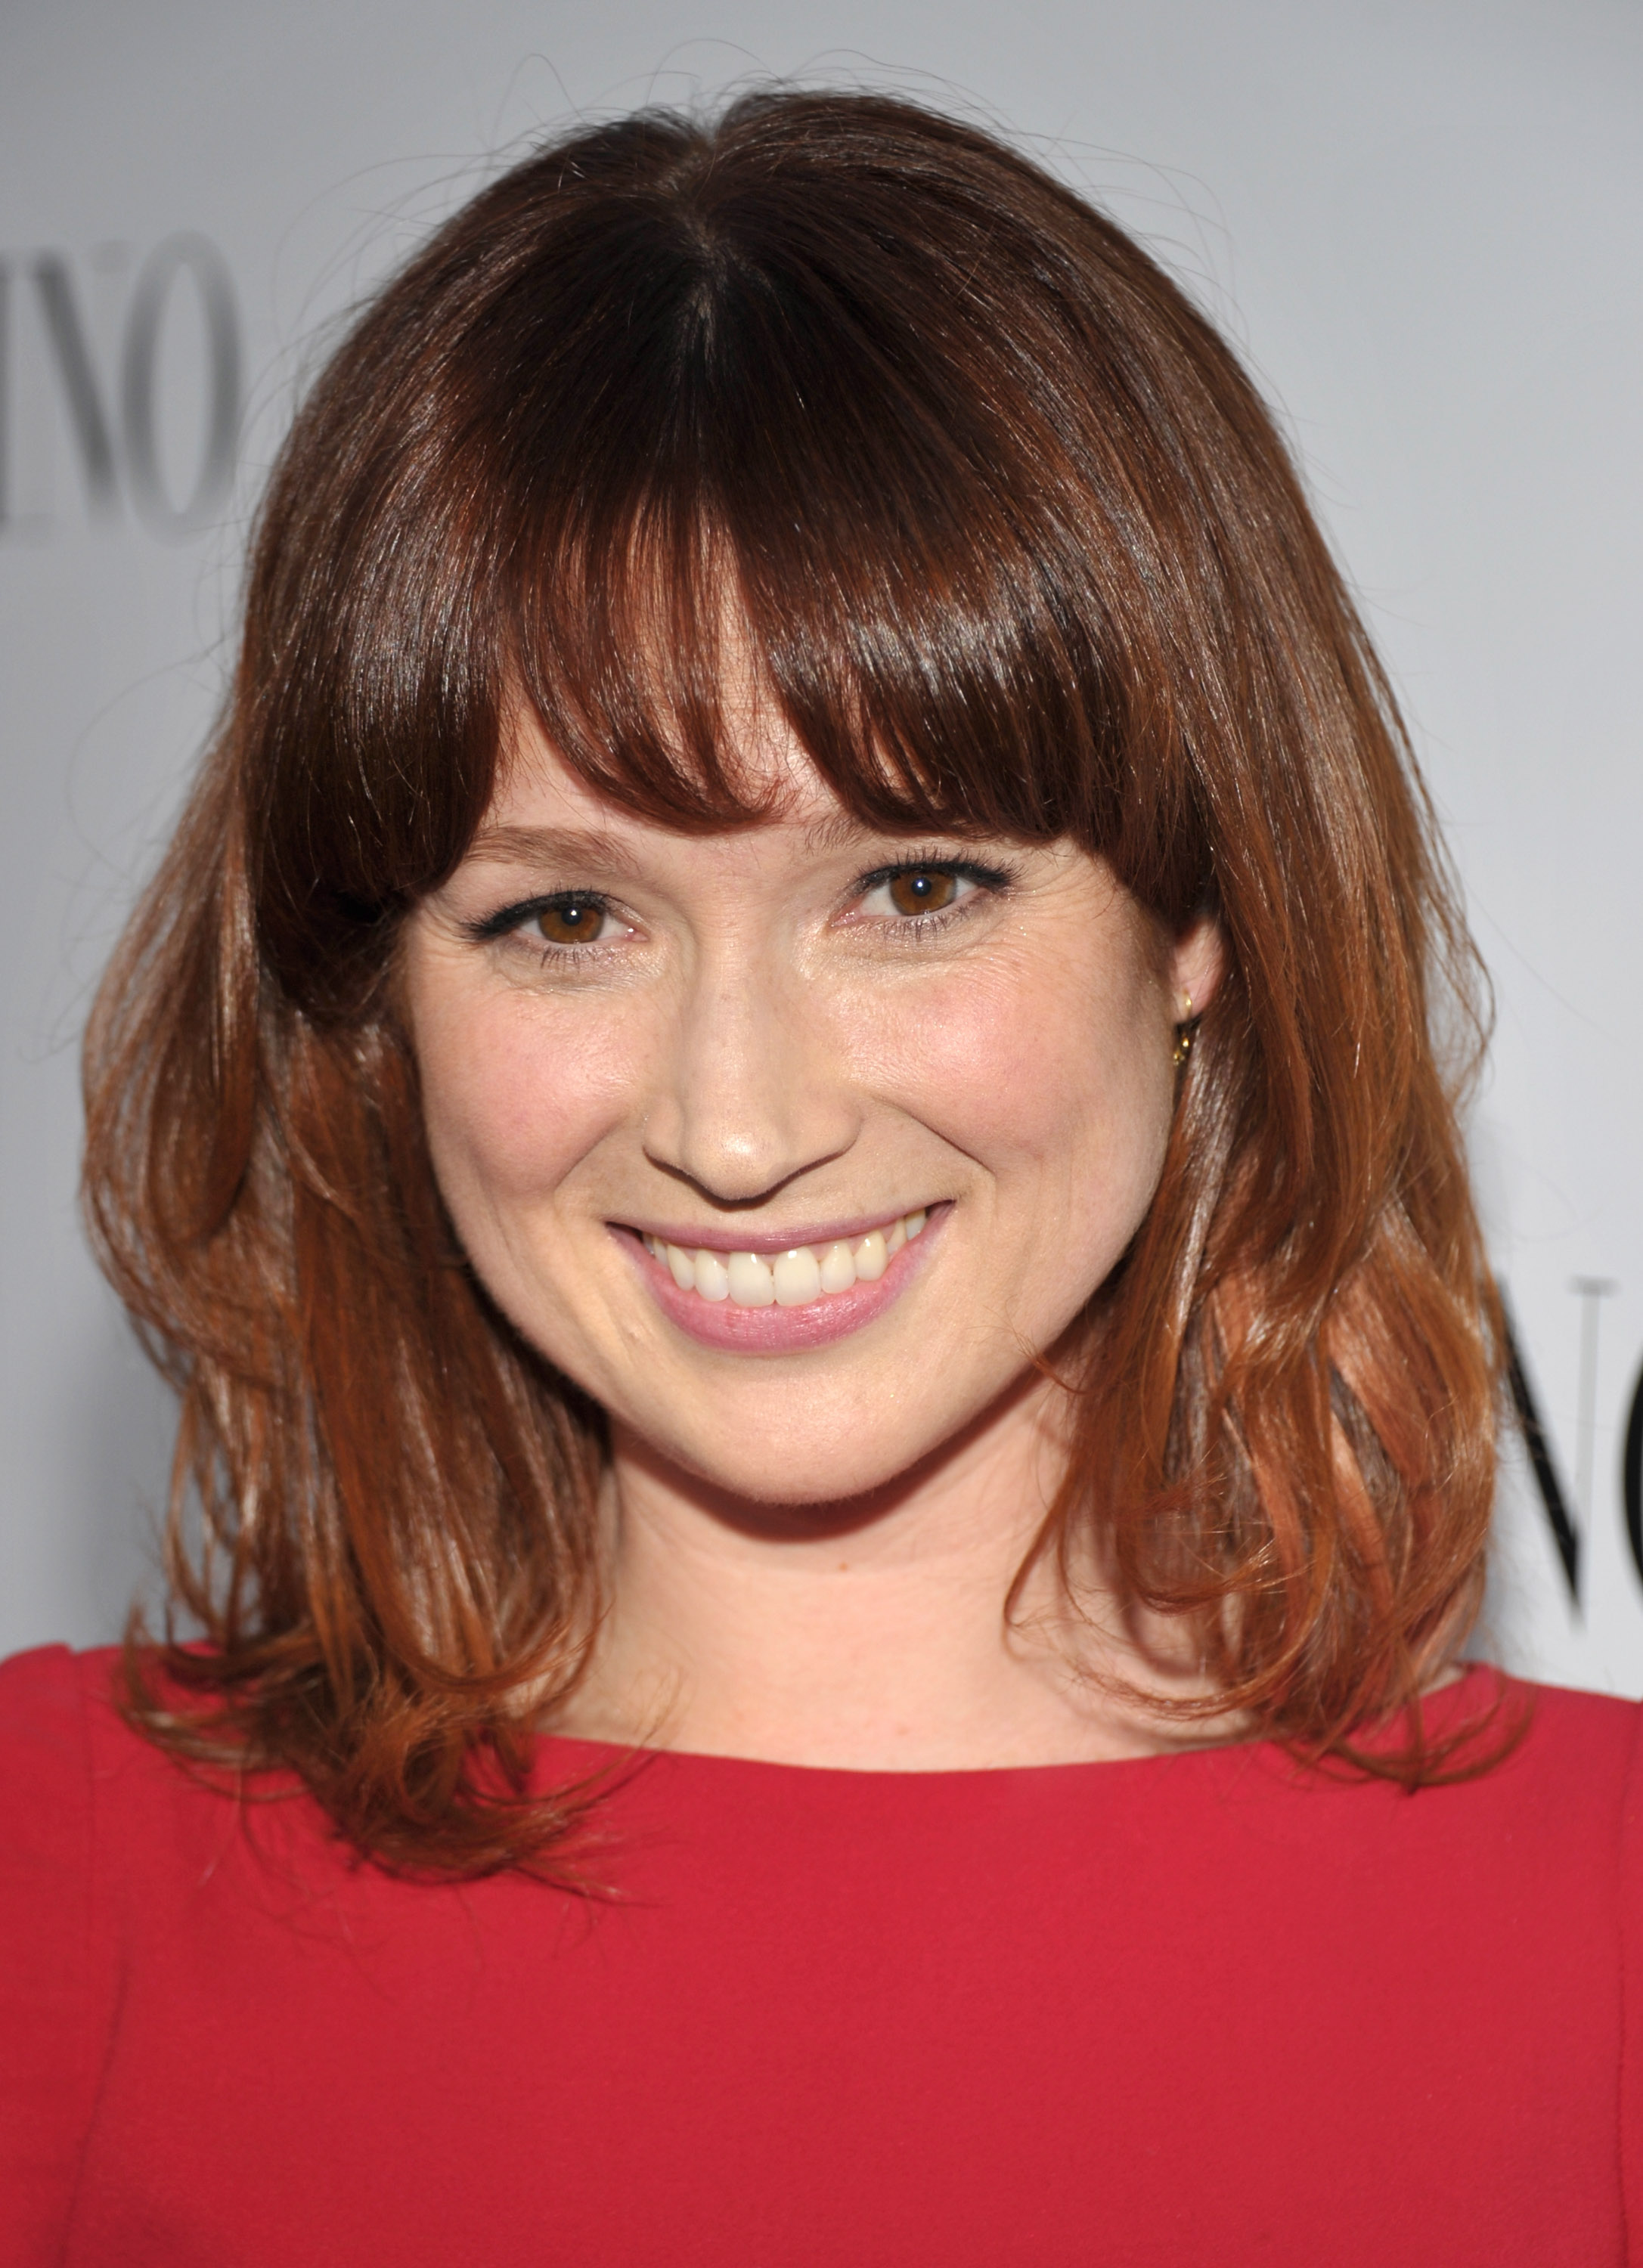 ellie kemper websiteellie kemper office, ellie kemper fan, ellie kemper net worth, ellie kemper fansite, ellie kemper teeth, ellie kemper reddit, ellie kemper website, ellie kemper running, ellie kemper hq, ellie kemper stand up, ellie kemper ellen, ellie kemper instagram, ellie kemper interview, ellie kemper husband, ellie kemper twitter, ellie kemper married, ellie kemper wikipedia